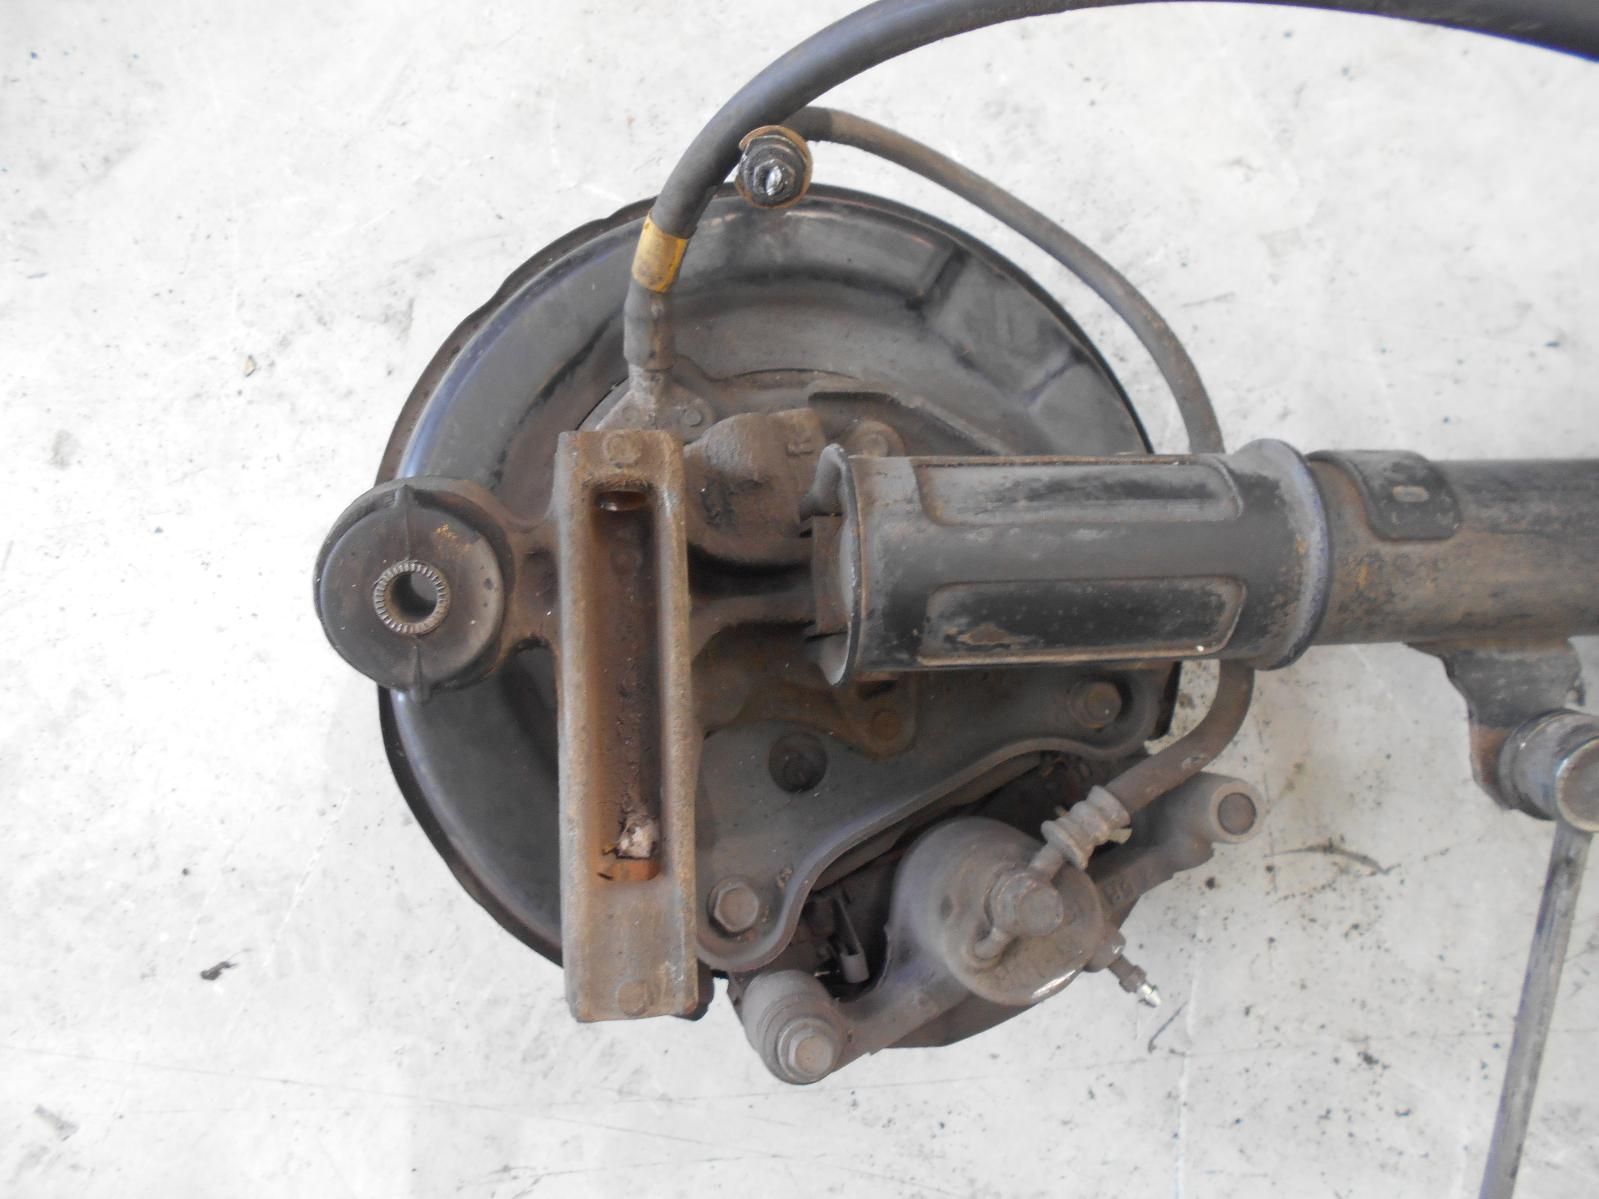 TOYOTA CAMRY, Right Rear Hub Assembly, SK20, NON ABS TYPE, 08/97-08/02